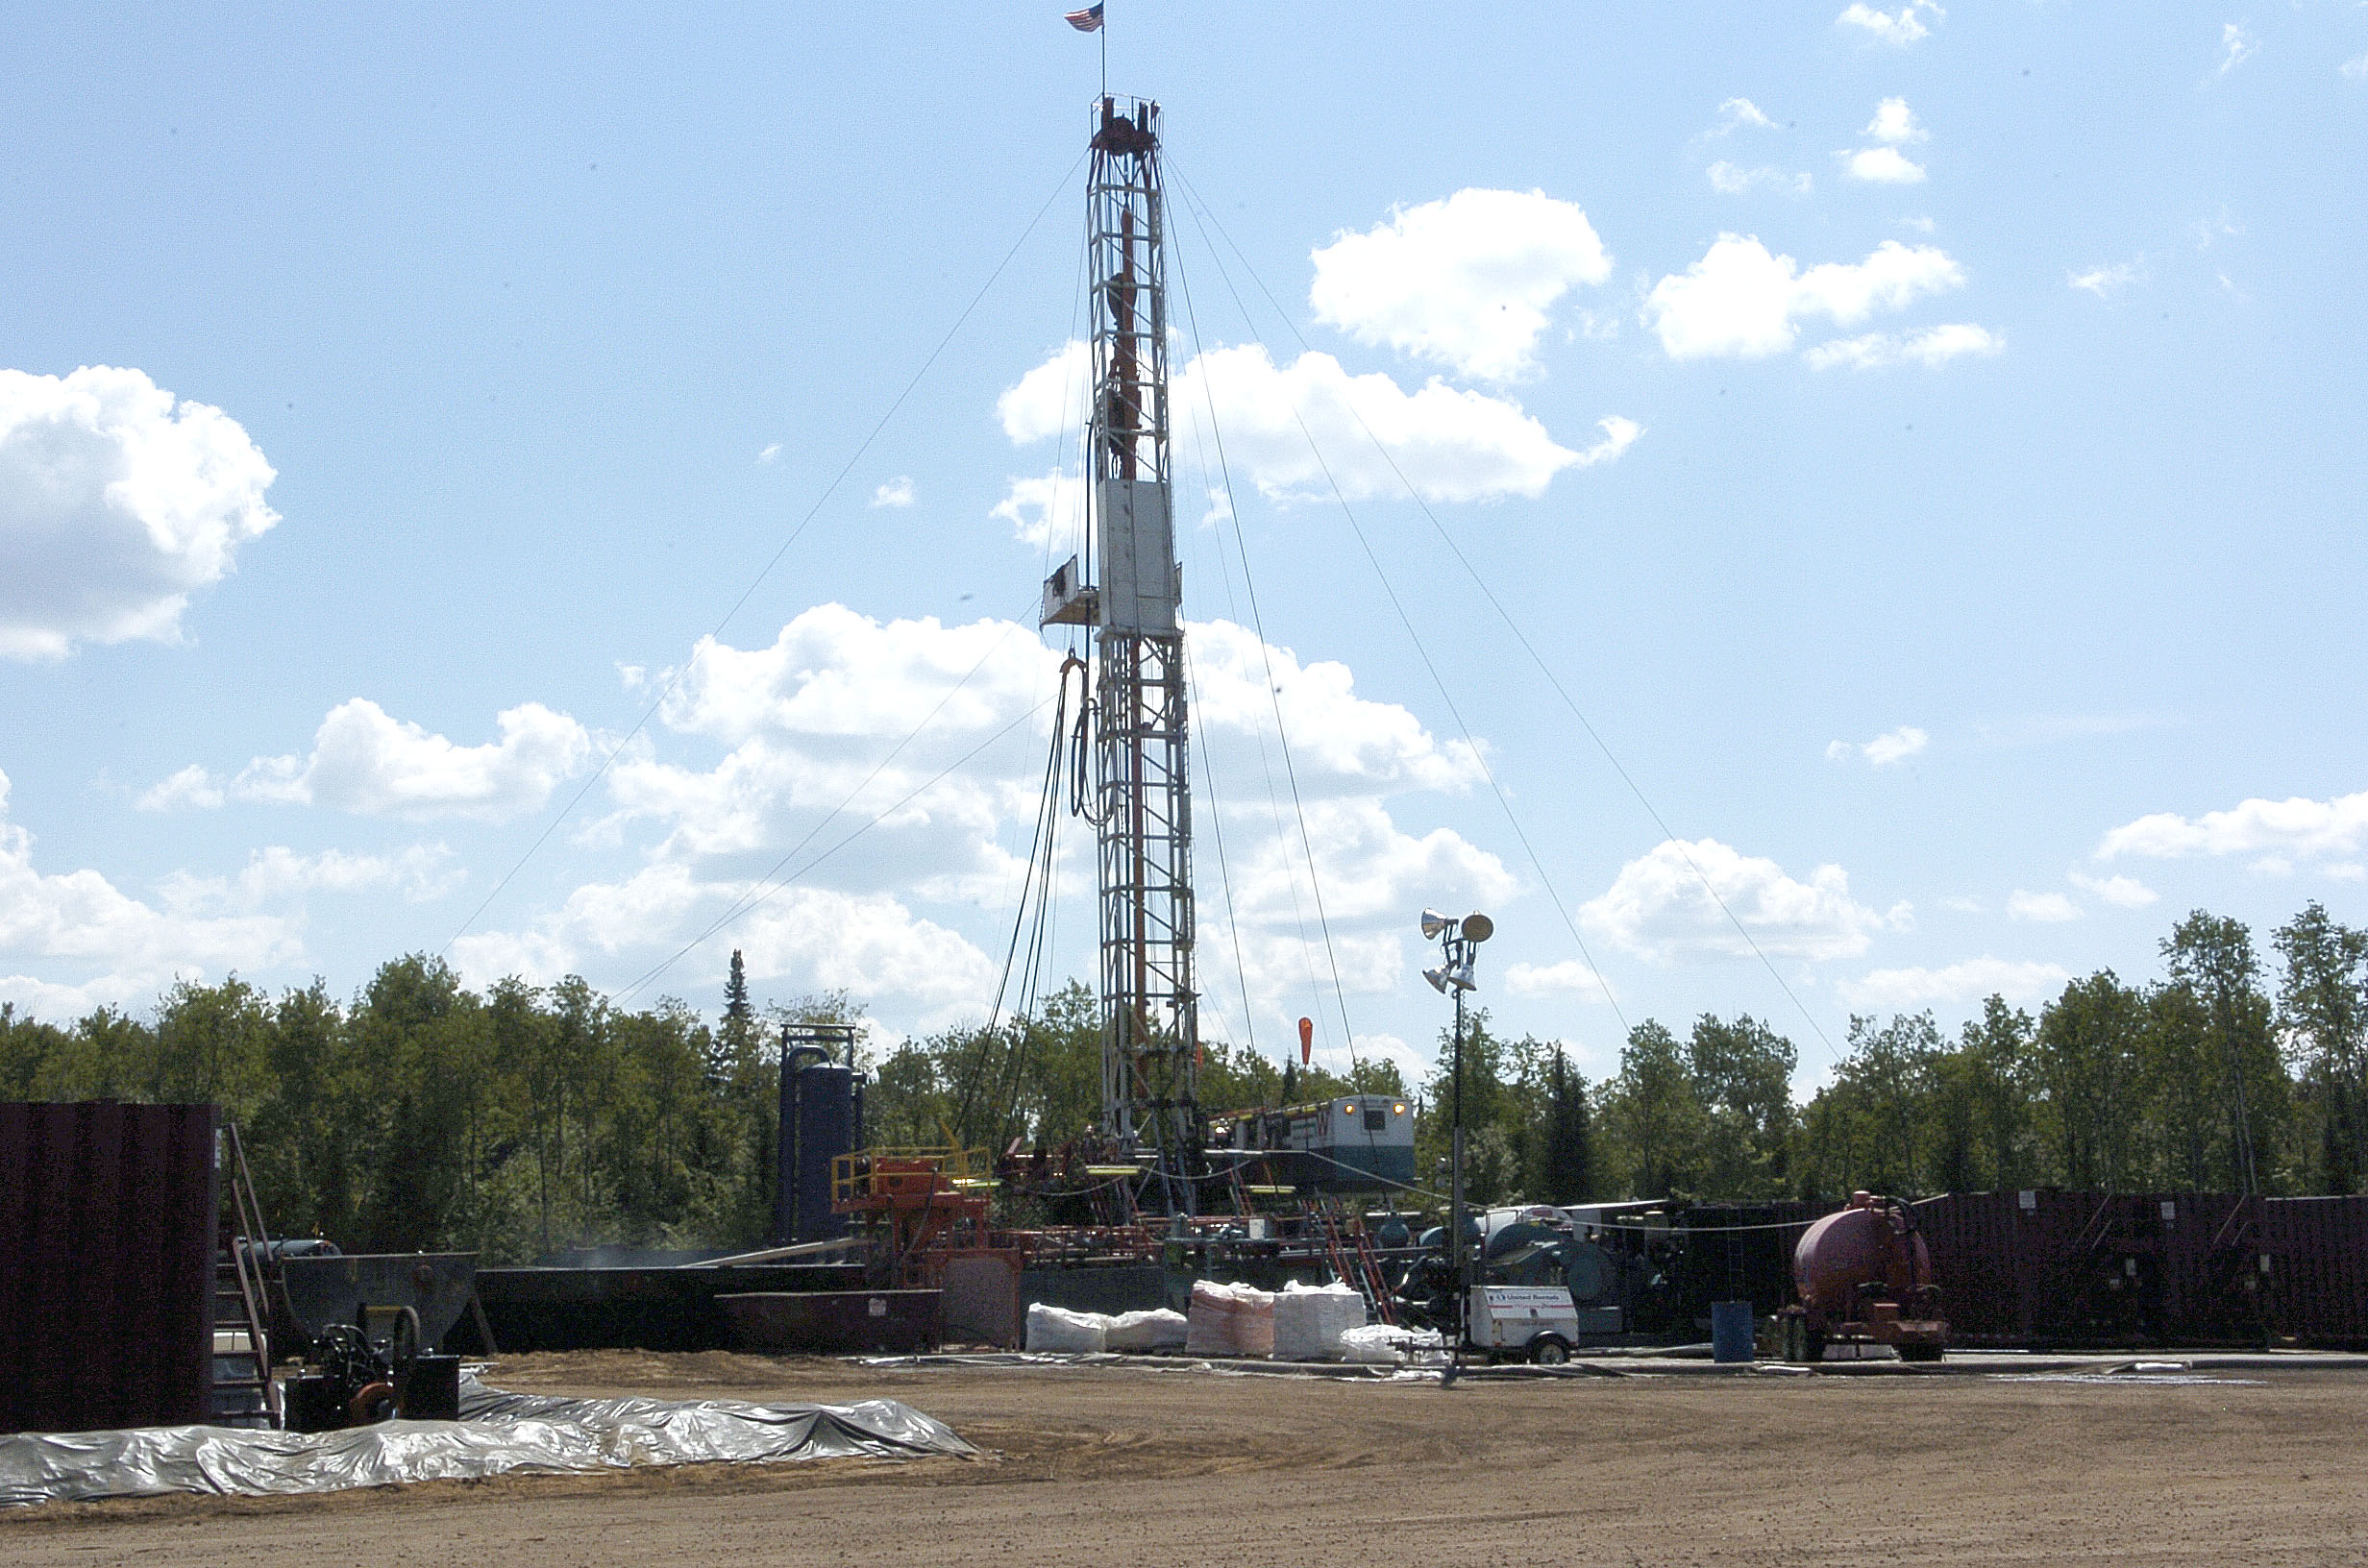 Excelsior fracking operation in Kalkaska, MI